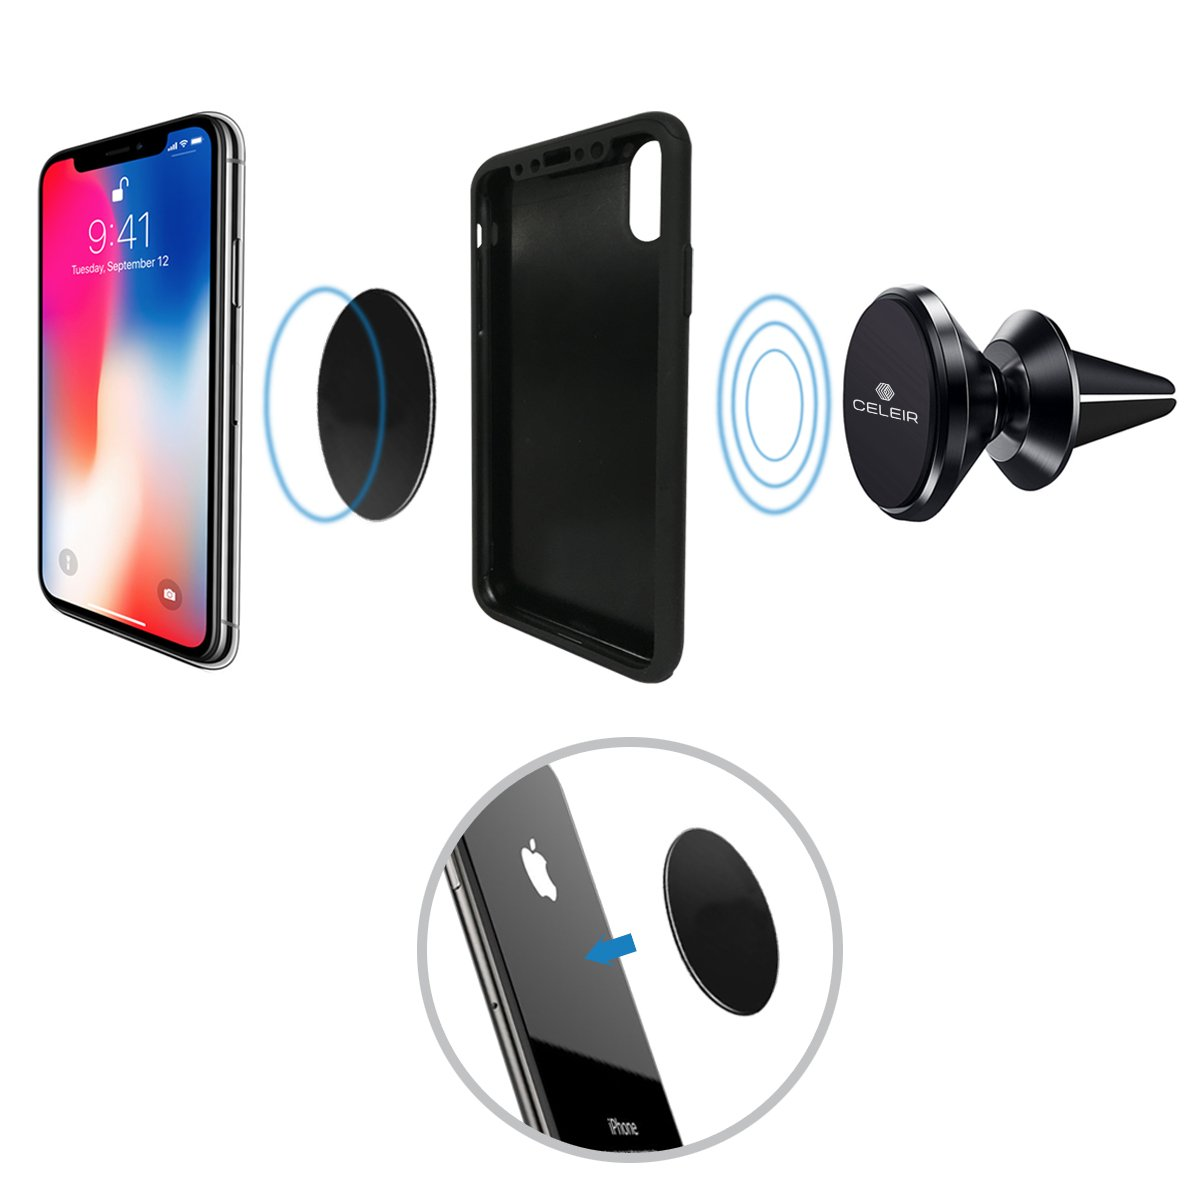 Note 9//S9// .. Celeir Magnetic Phone Mount for Car Including iPhone Xs MAX//XR//XS//X//8 Plus Best Magnetic Phone Mount and Holder for 2018 Gps Universal Magnetic Phone Mount and Holder for any Phone